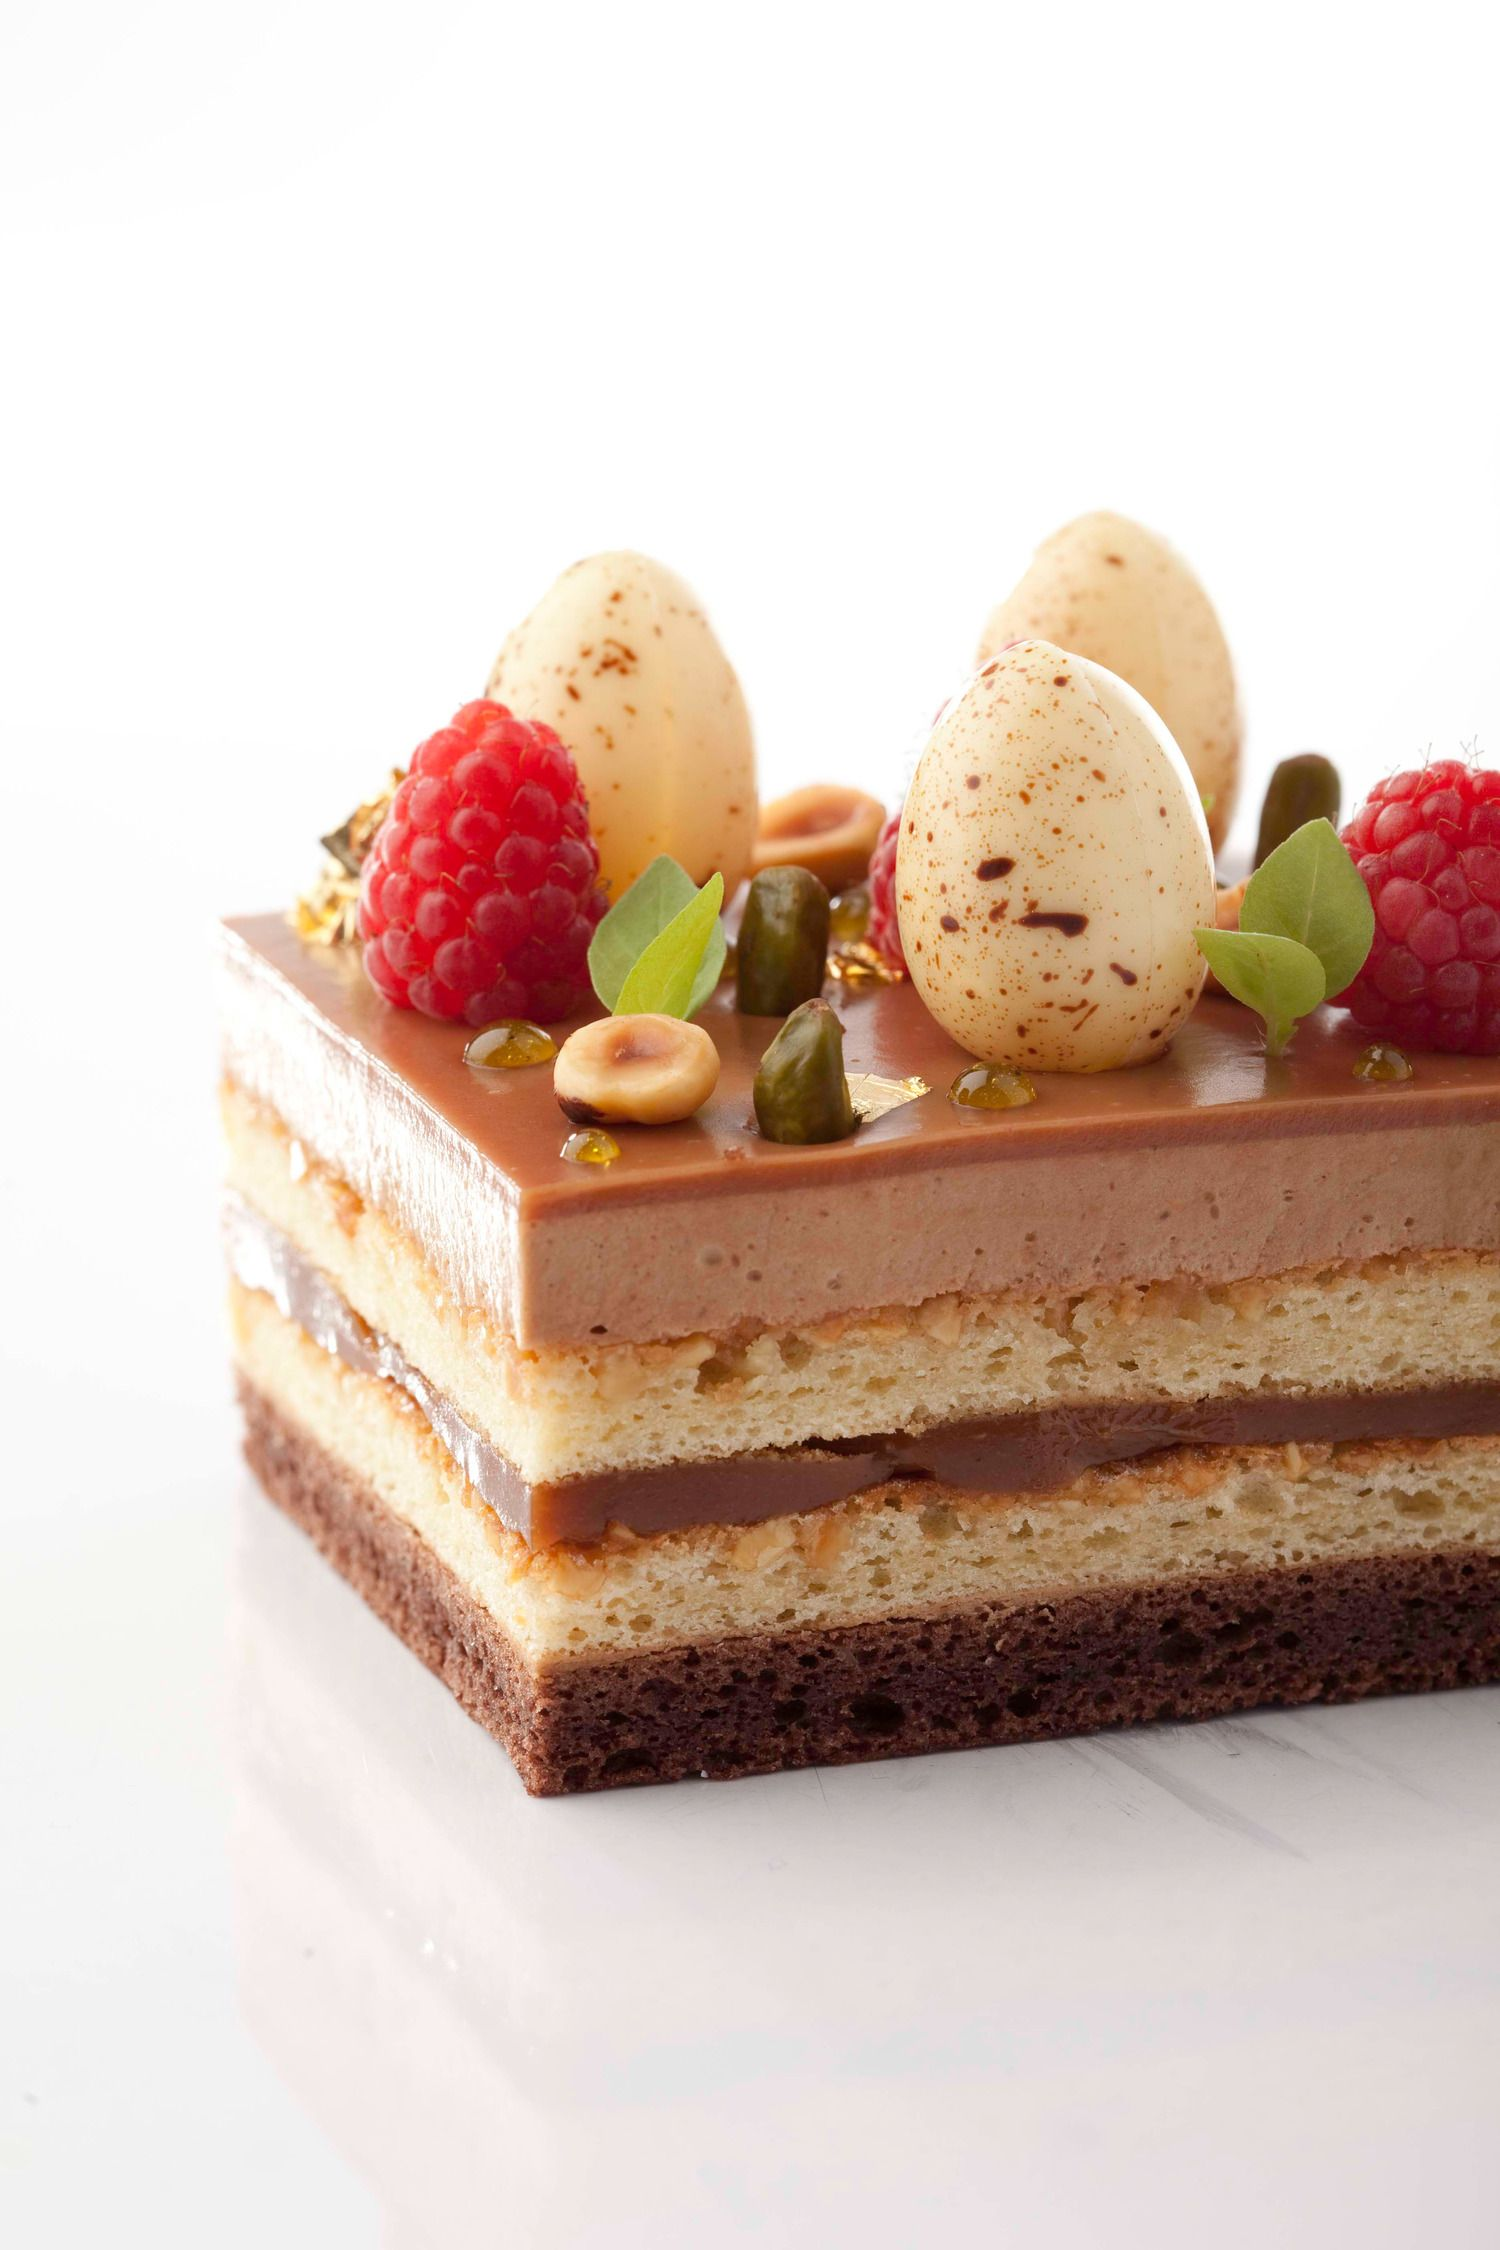 Pin by Tkl Emily on Patisserie & entremet | Desserts ...